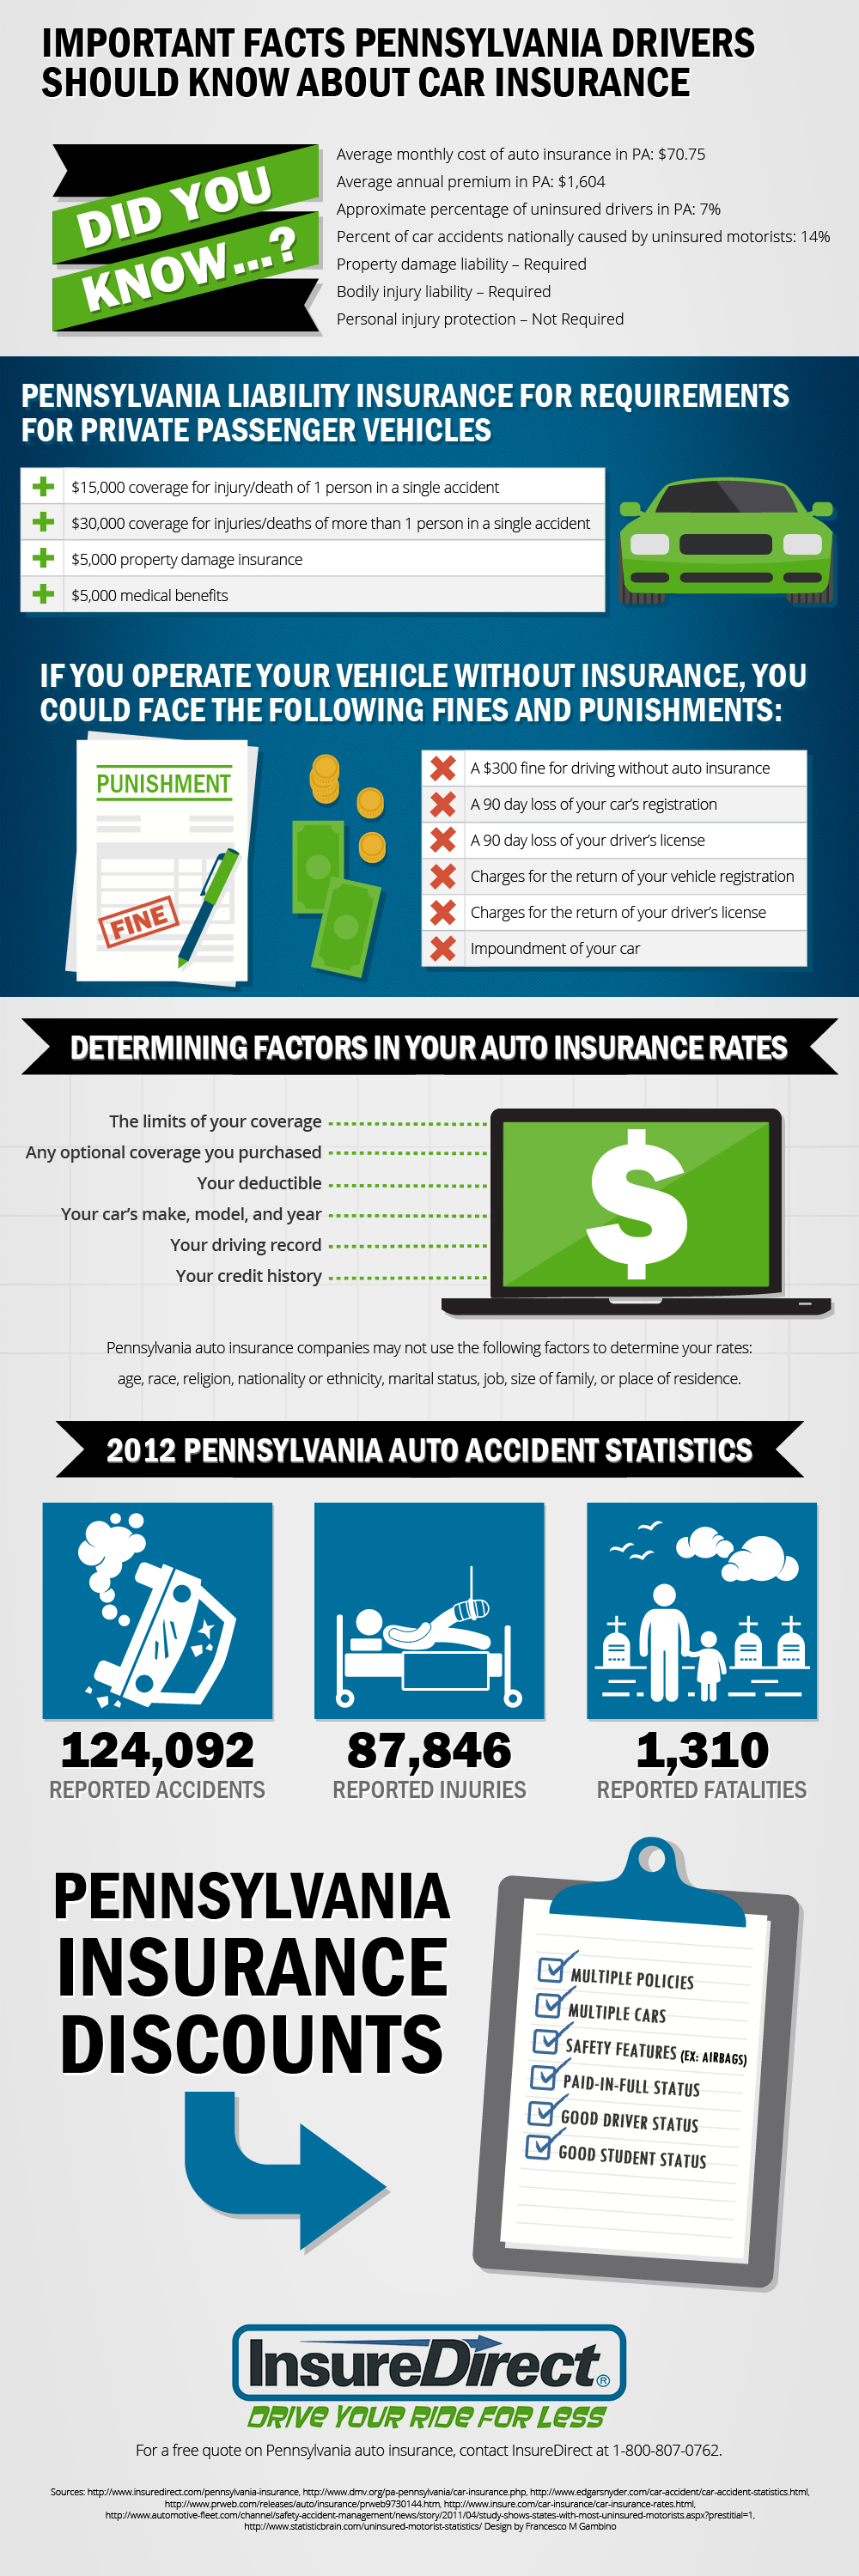 InsureDirect_Infographic_01